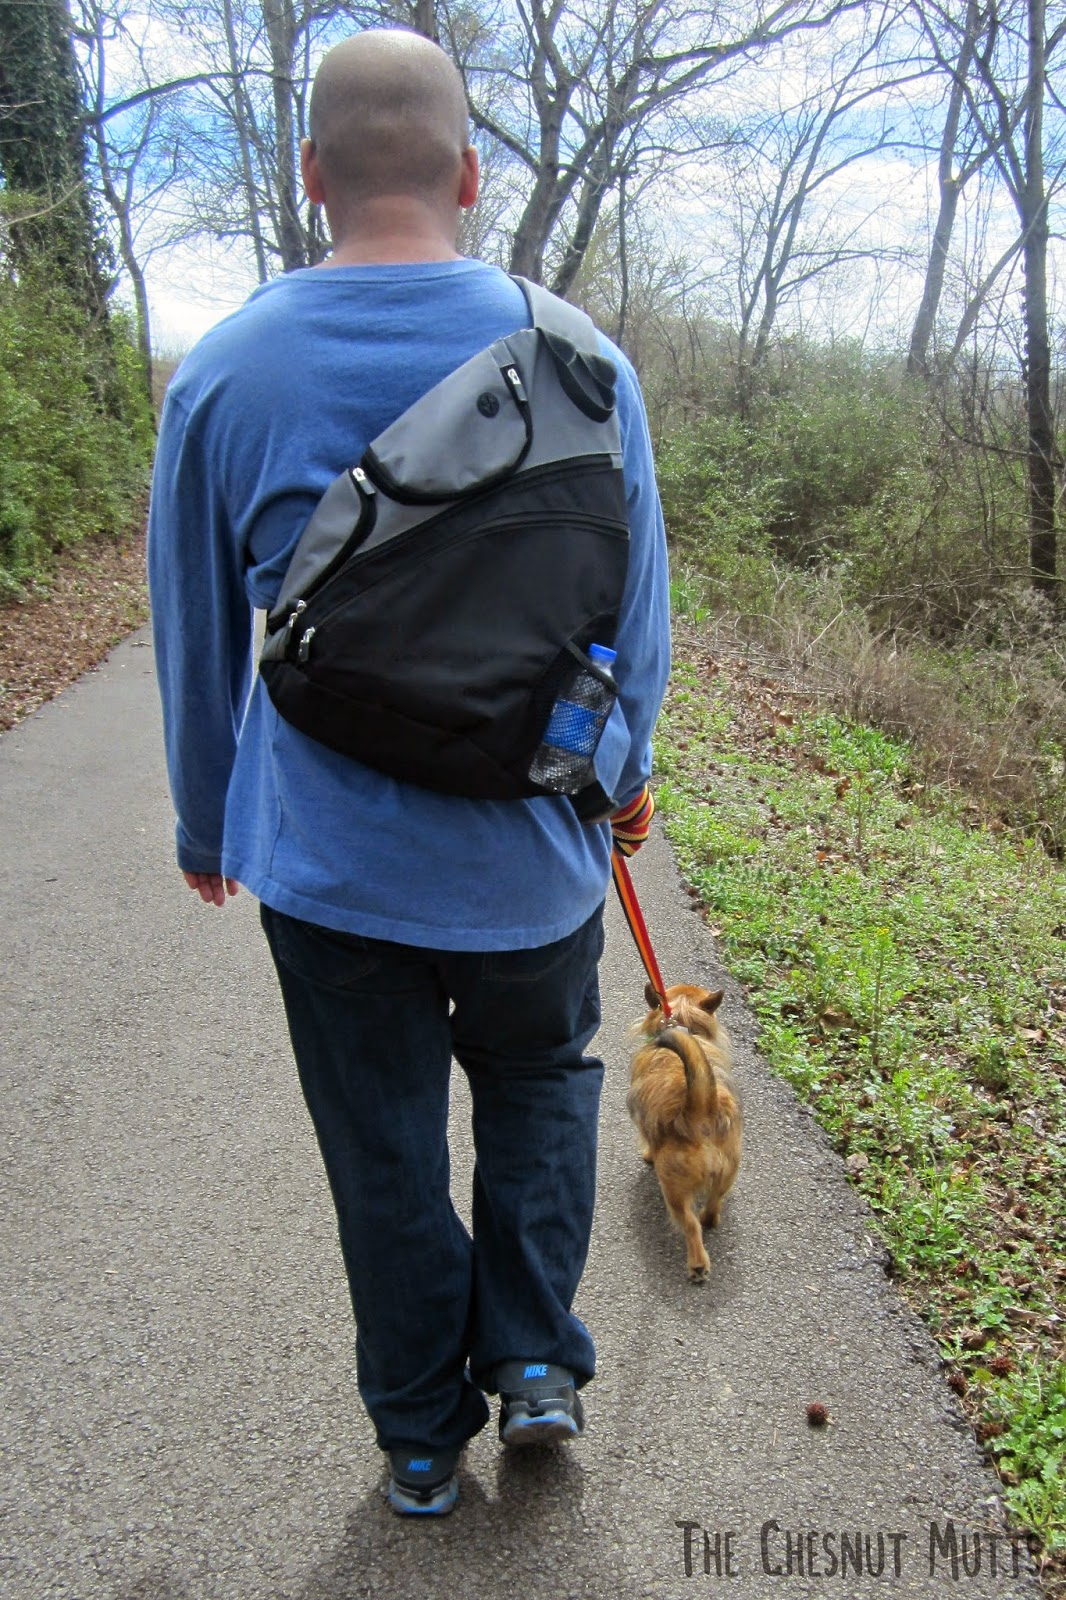 Johnny walking Jada with the reflective dog leash